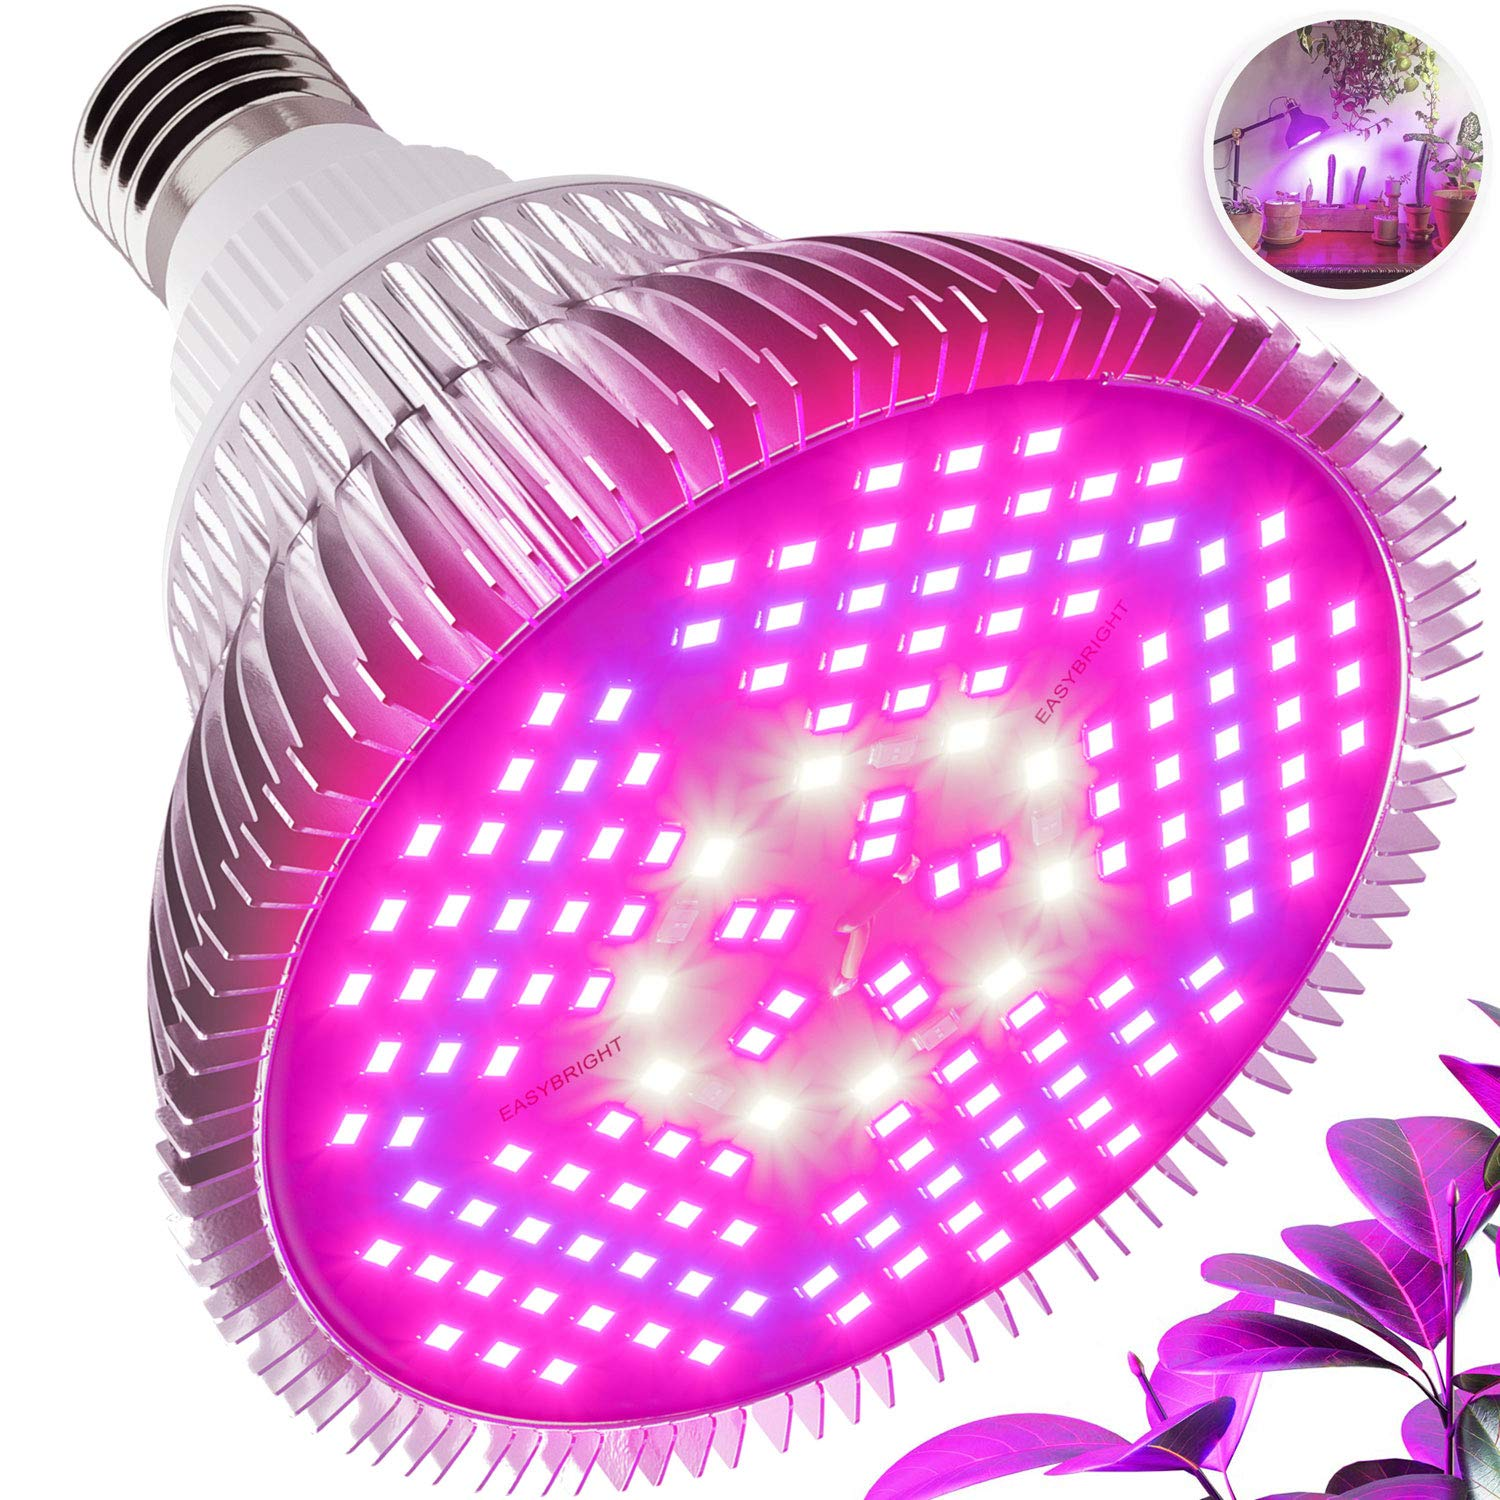 100W LED Grow Light Bulb - Full Spectrum Lamp for Indoor Plants, Garden, Flowers, Vegetables, Greenhouse & Hydroponic Growing | E27 Base 150 LEDs (AC85-265V) by Haus Bright by Haus Bright